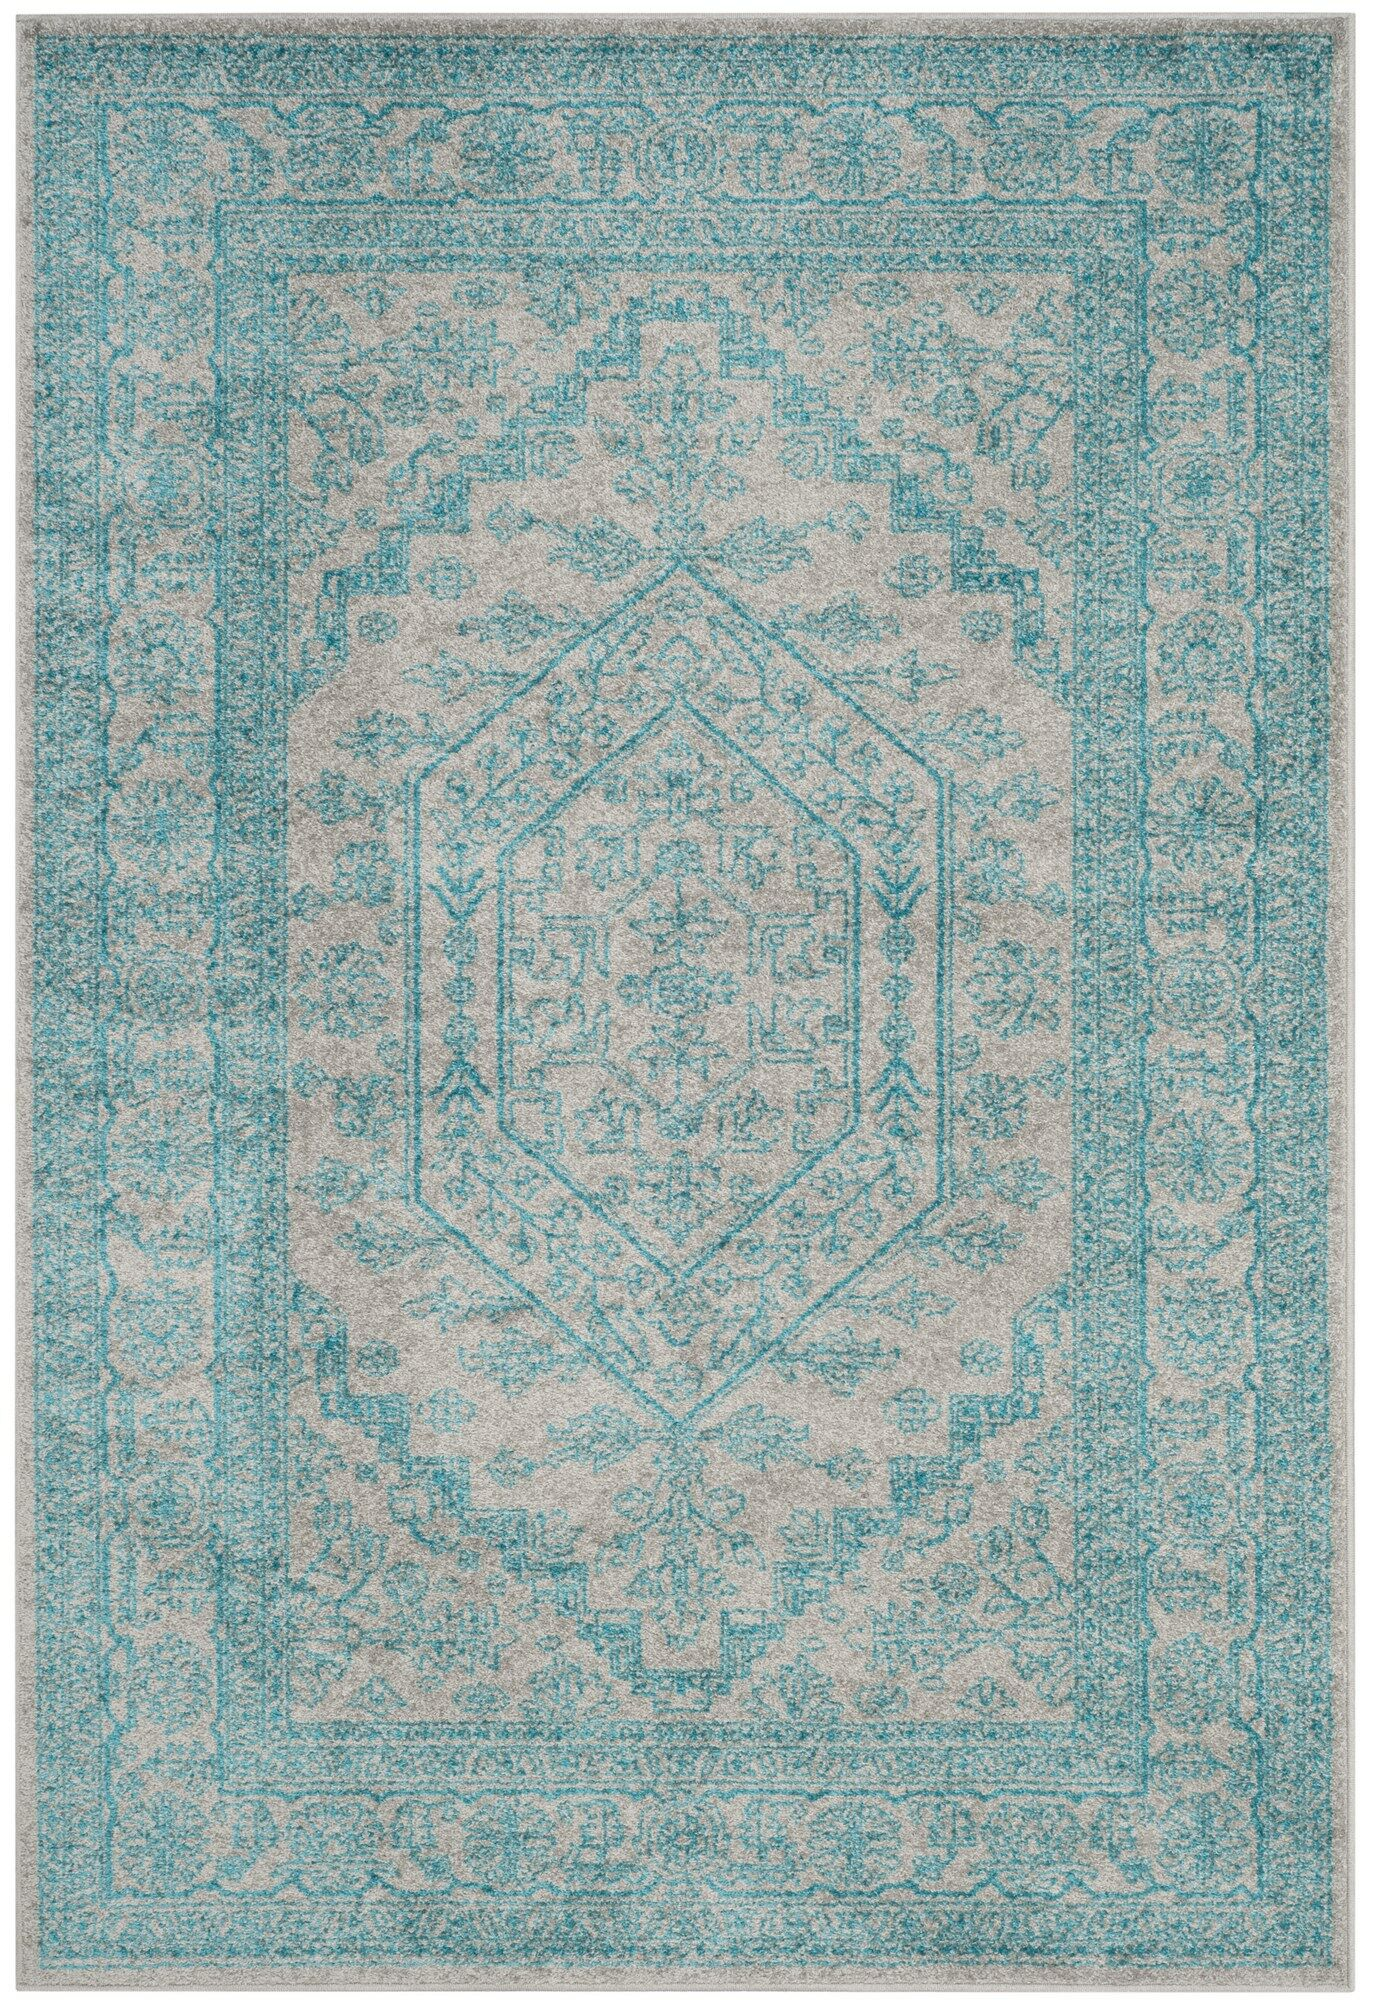 Connie Light Gray/Teal Area Rug Rug Size: Rectangle 6' x 9'